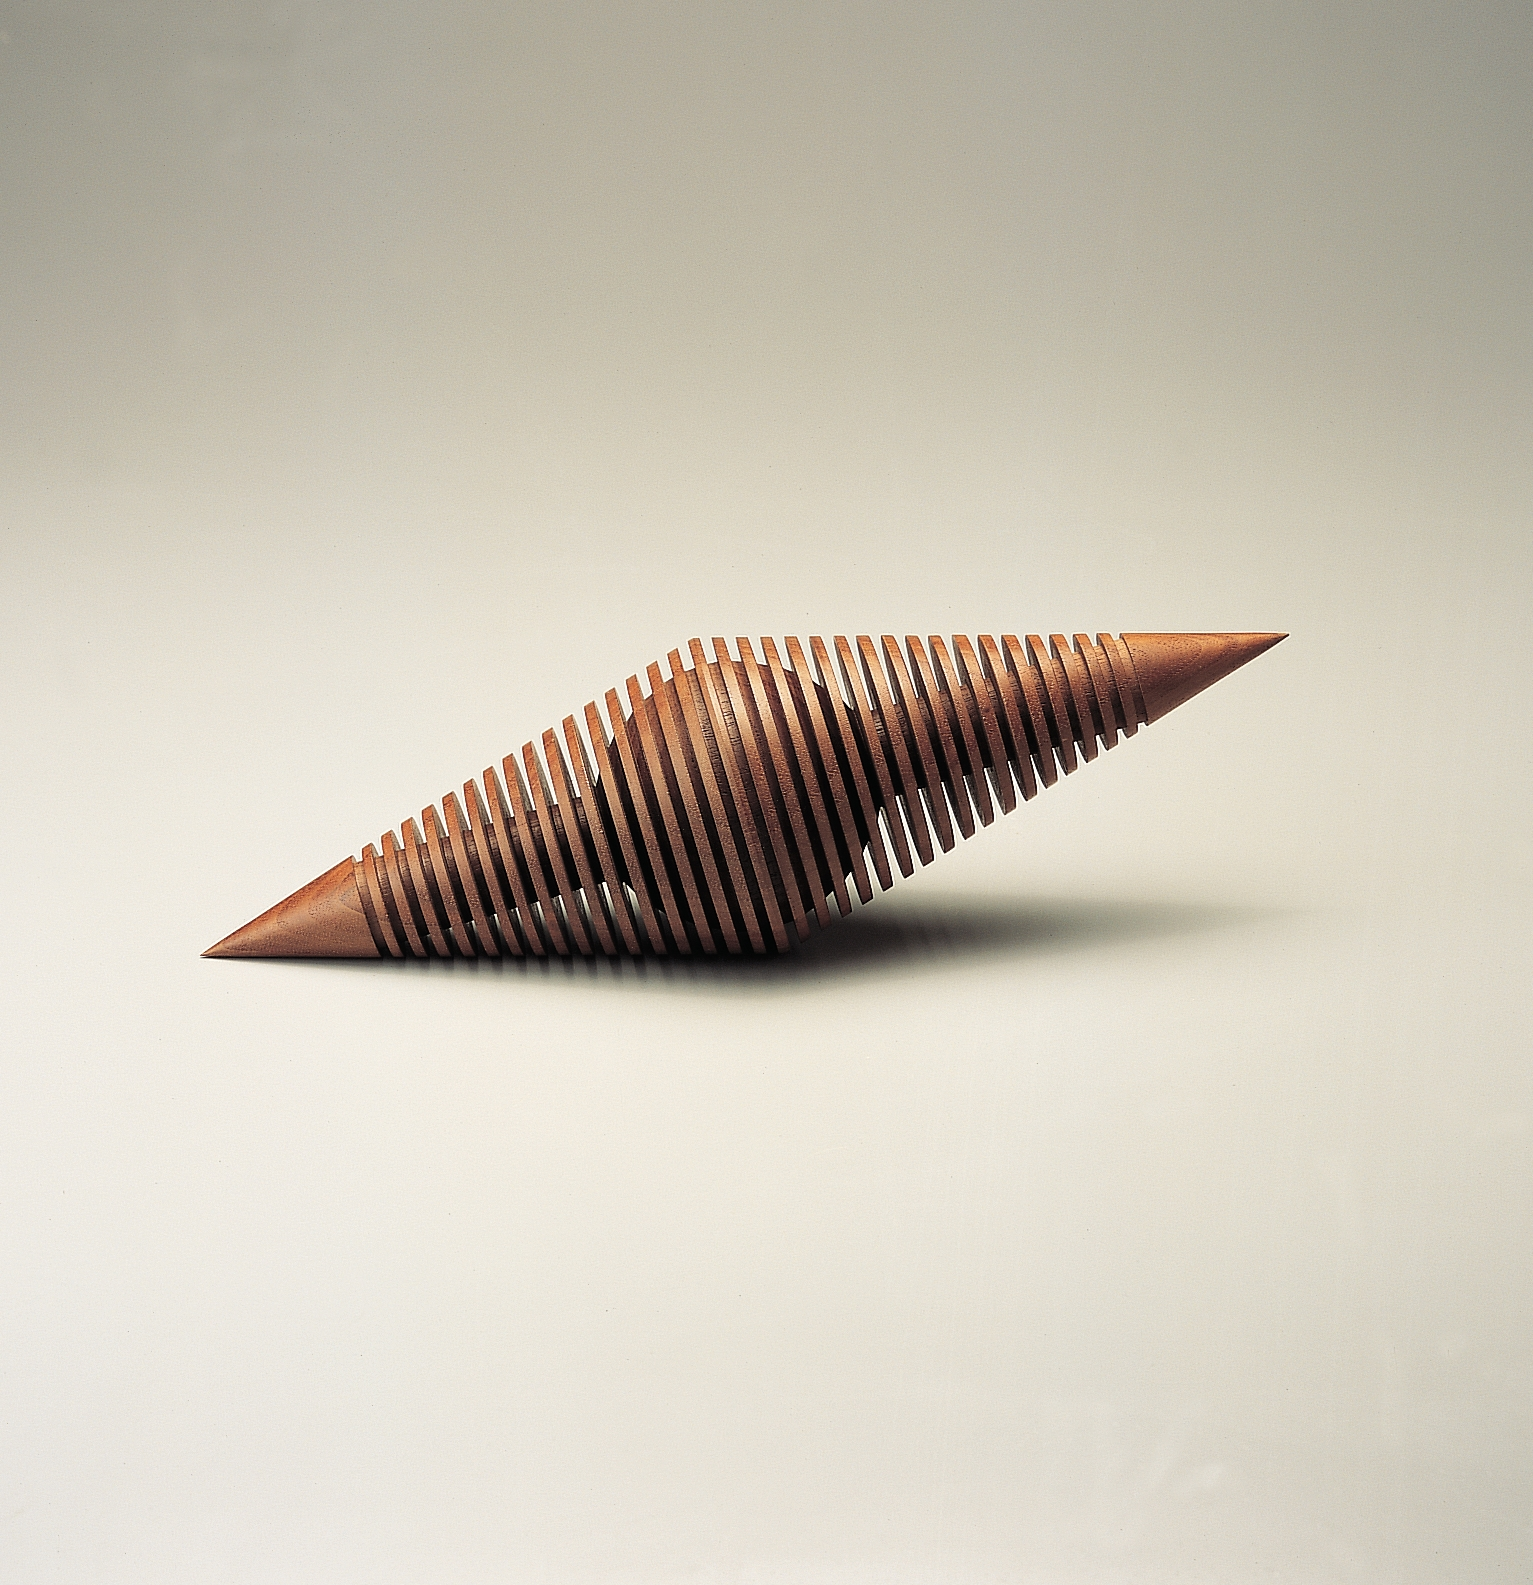 Explorations in Wood: Selections from The Center for Art in Wood